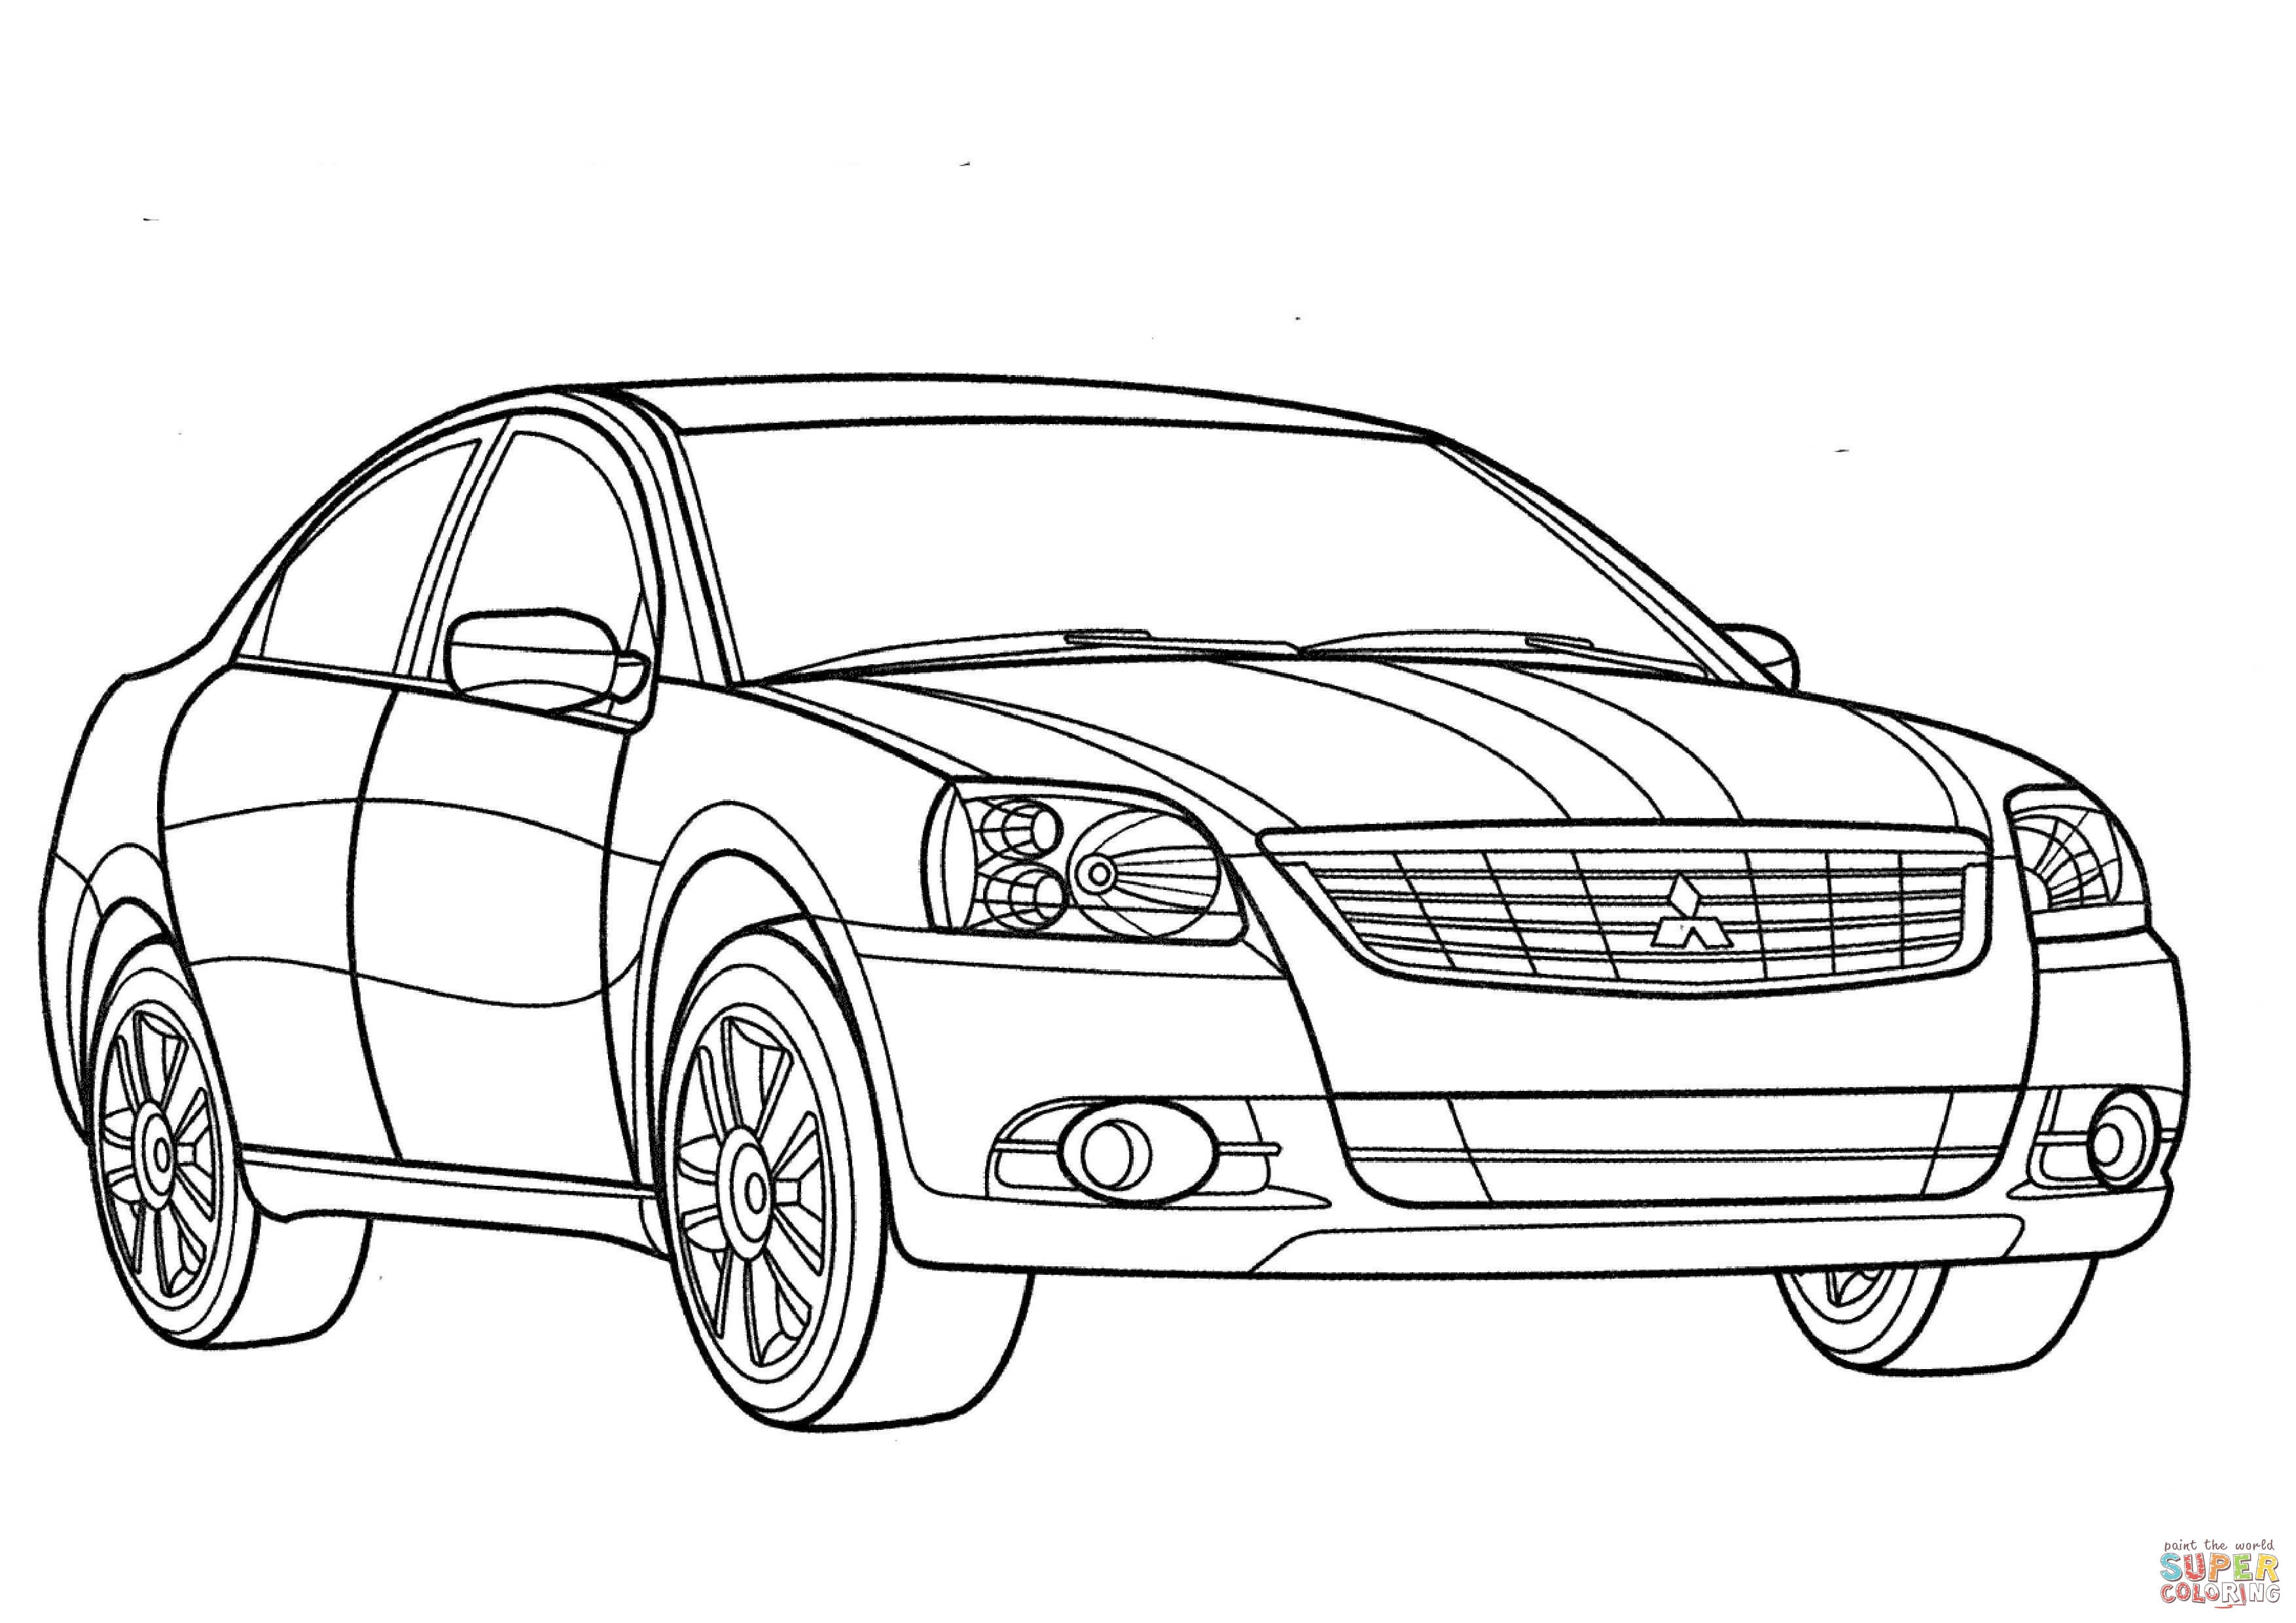 Mitsubishi Eclipse Coloring Pages Sketch Coloring Page